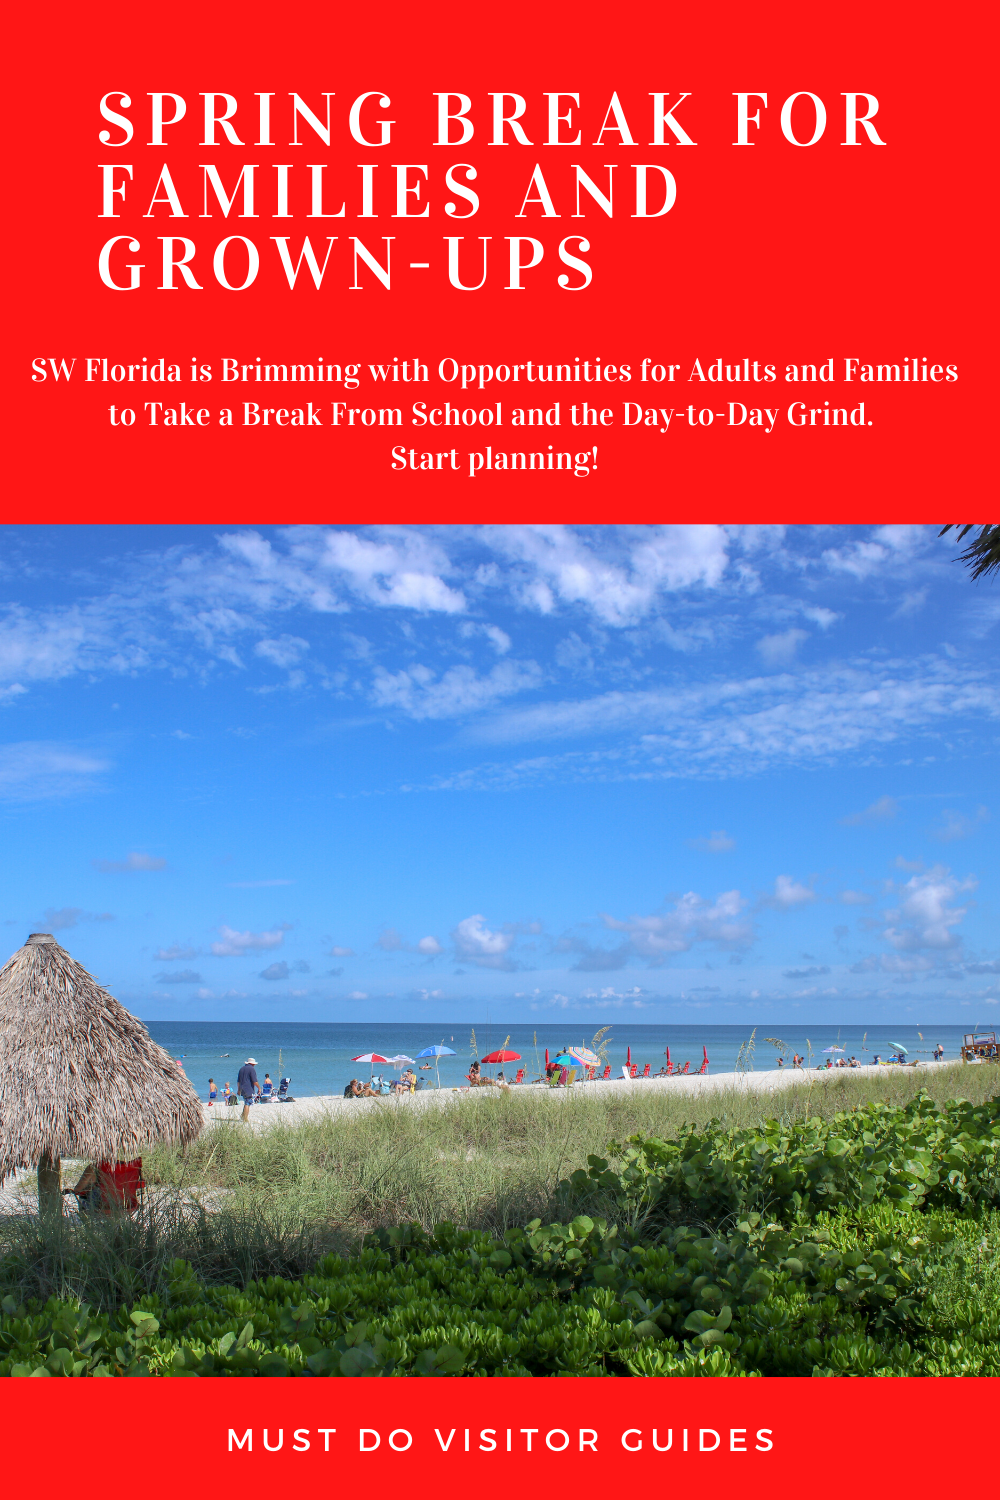 Spring Break for Families and Grown-Ups - SW Florida is brimming with opportunities for adults and families to take a break from school and the day-to-day grind. Start Planning!  Must Do Visitor Guides | MustDo.com